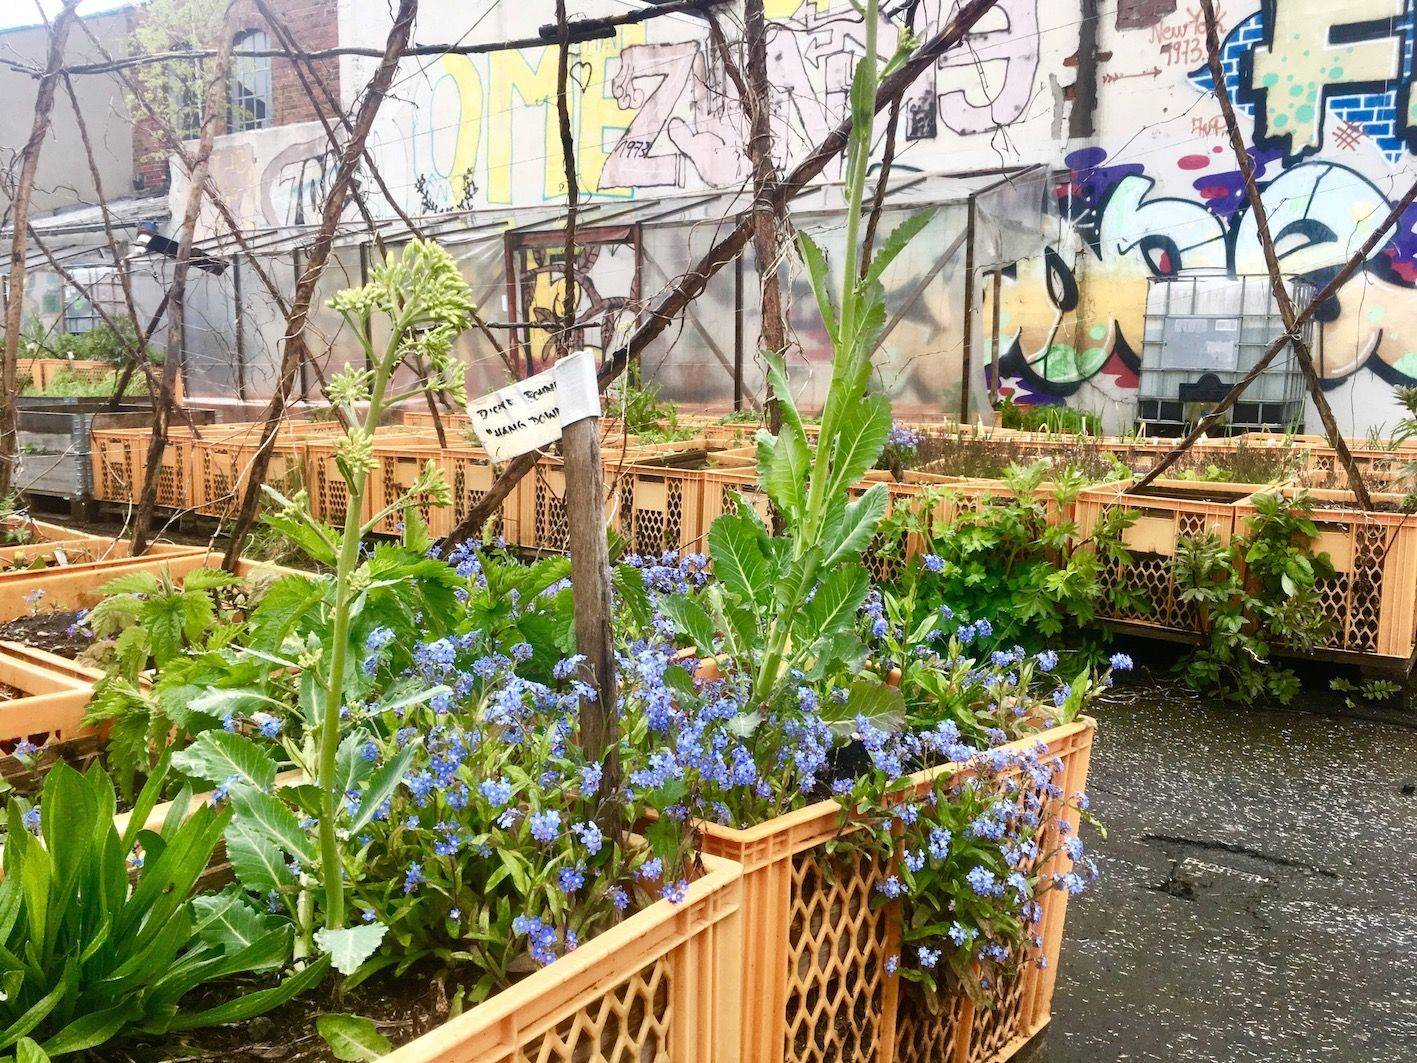 Monster World Garten My Garden In The City Urban Gardening Is The Latest Trend